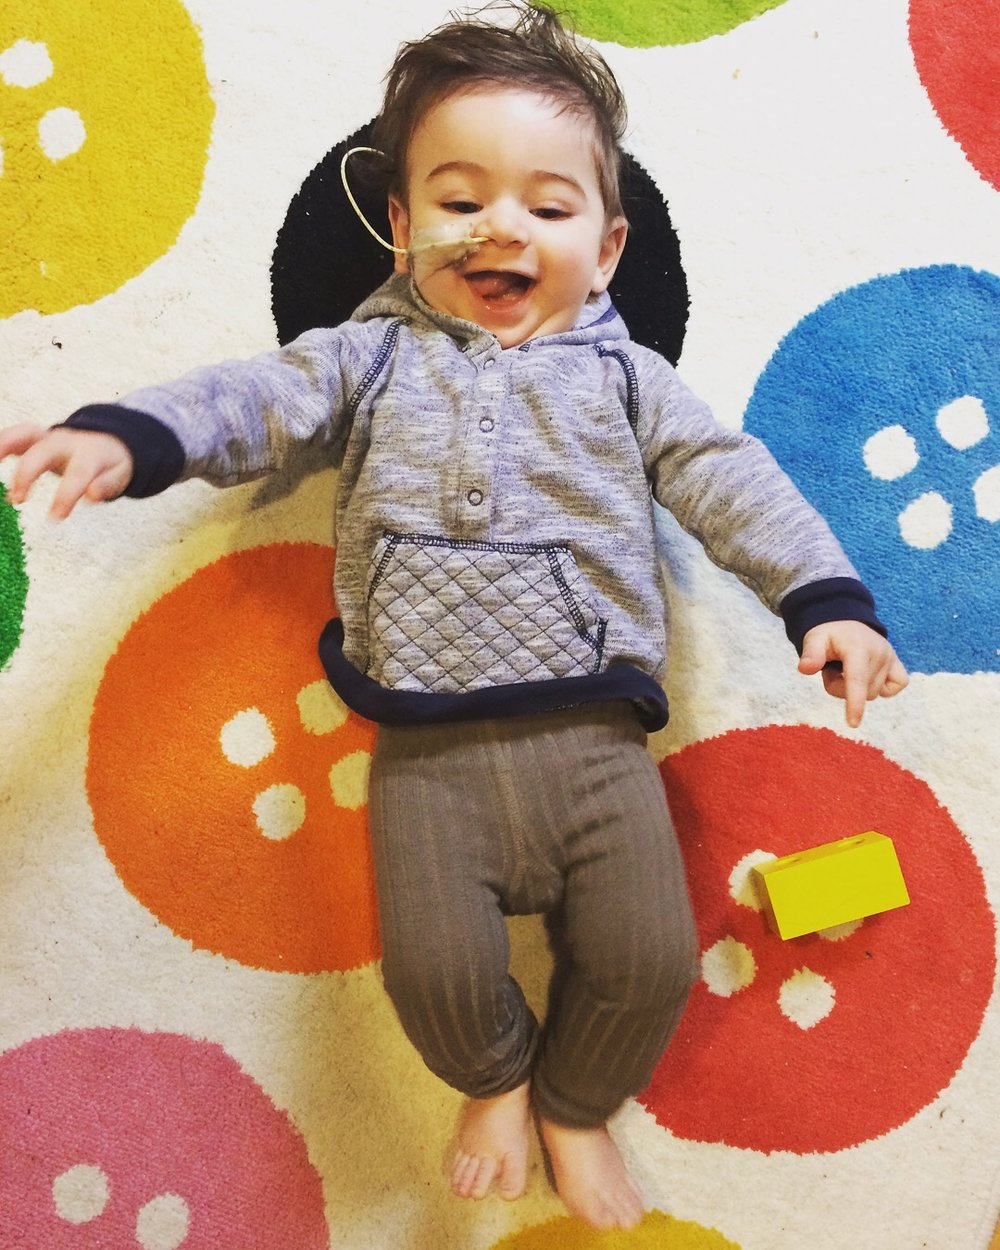 The hardest part has been letting go of what i thought ny infant would be like. The more i let go of that idea in my mind, the more i'm able to appreciate my little baby for who he is- a sweet smiley curious baby boy, who just happens to be tube fed! - Chava Bolotin